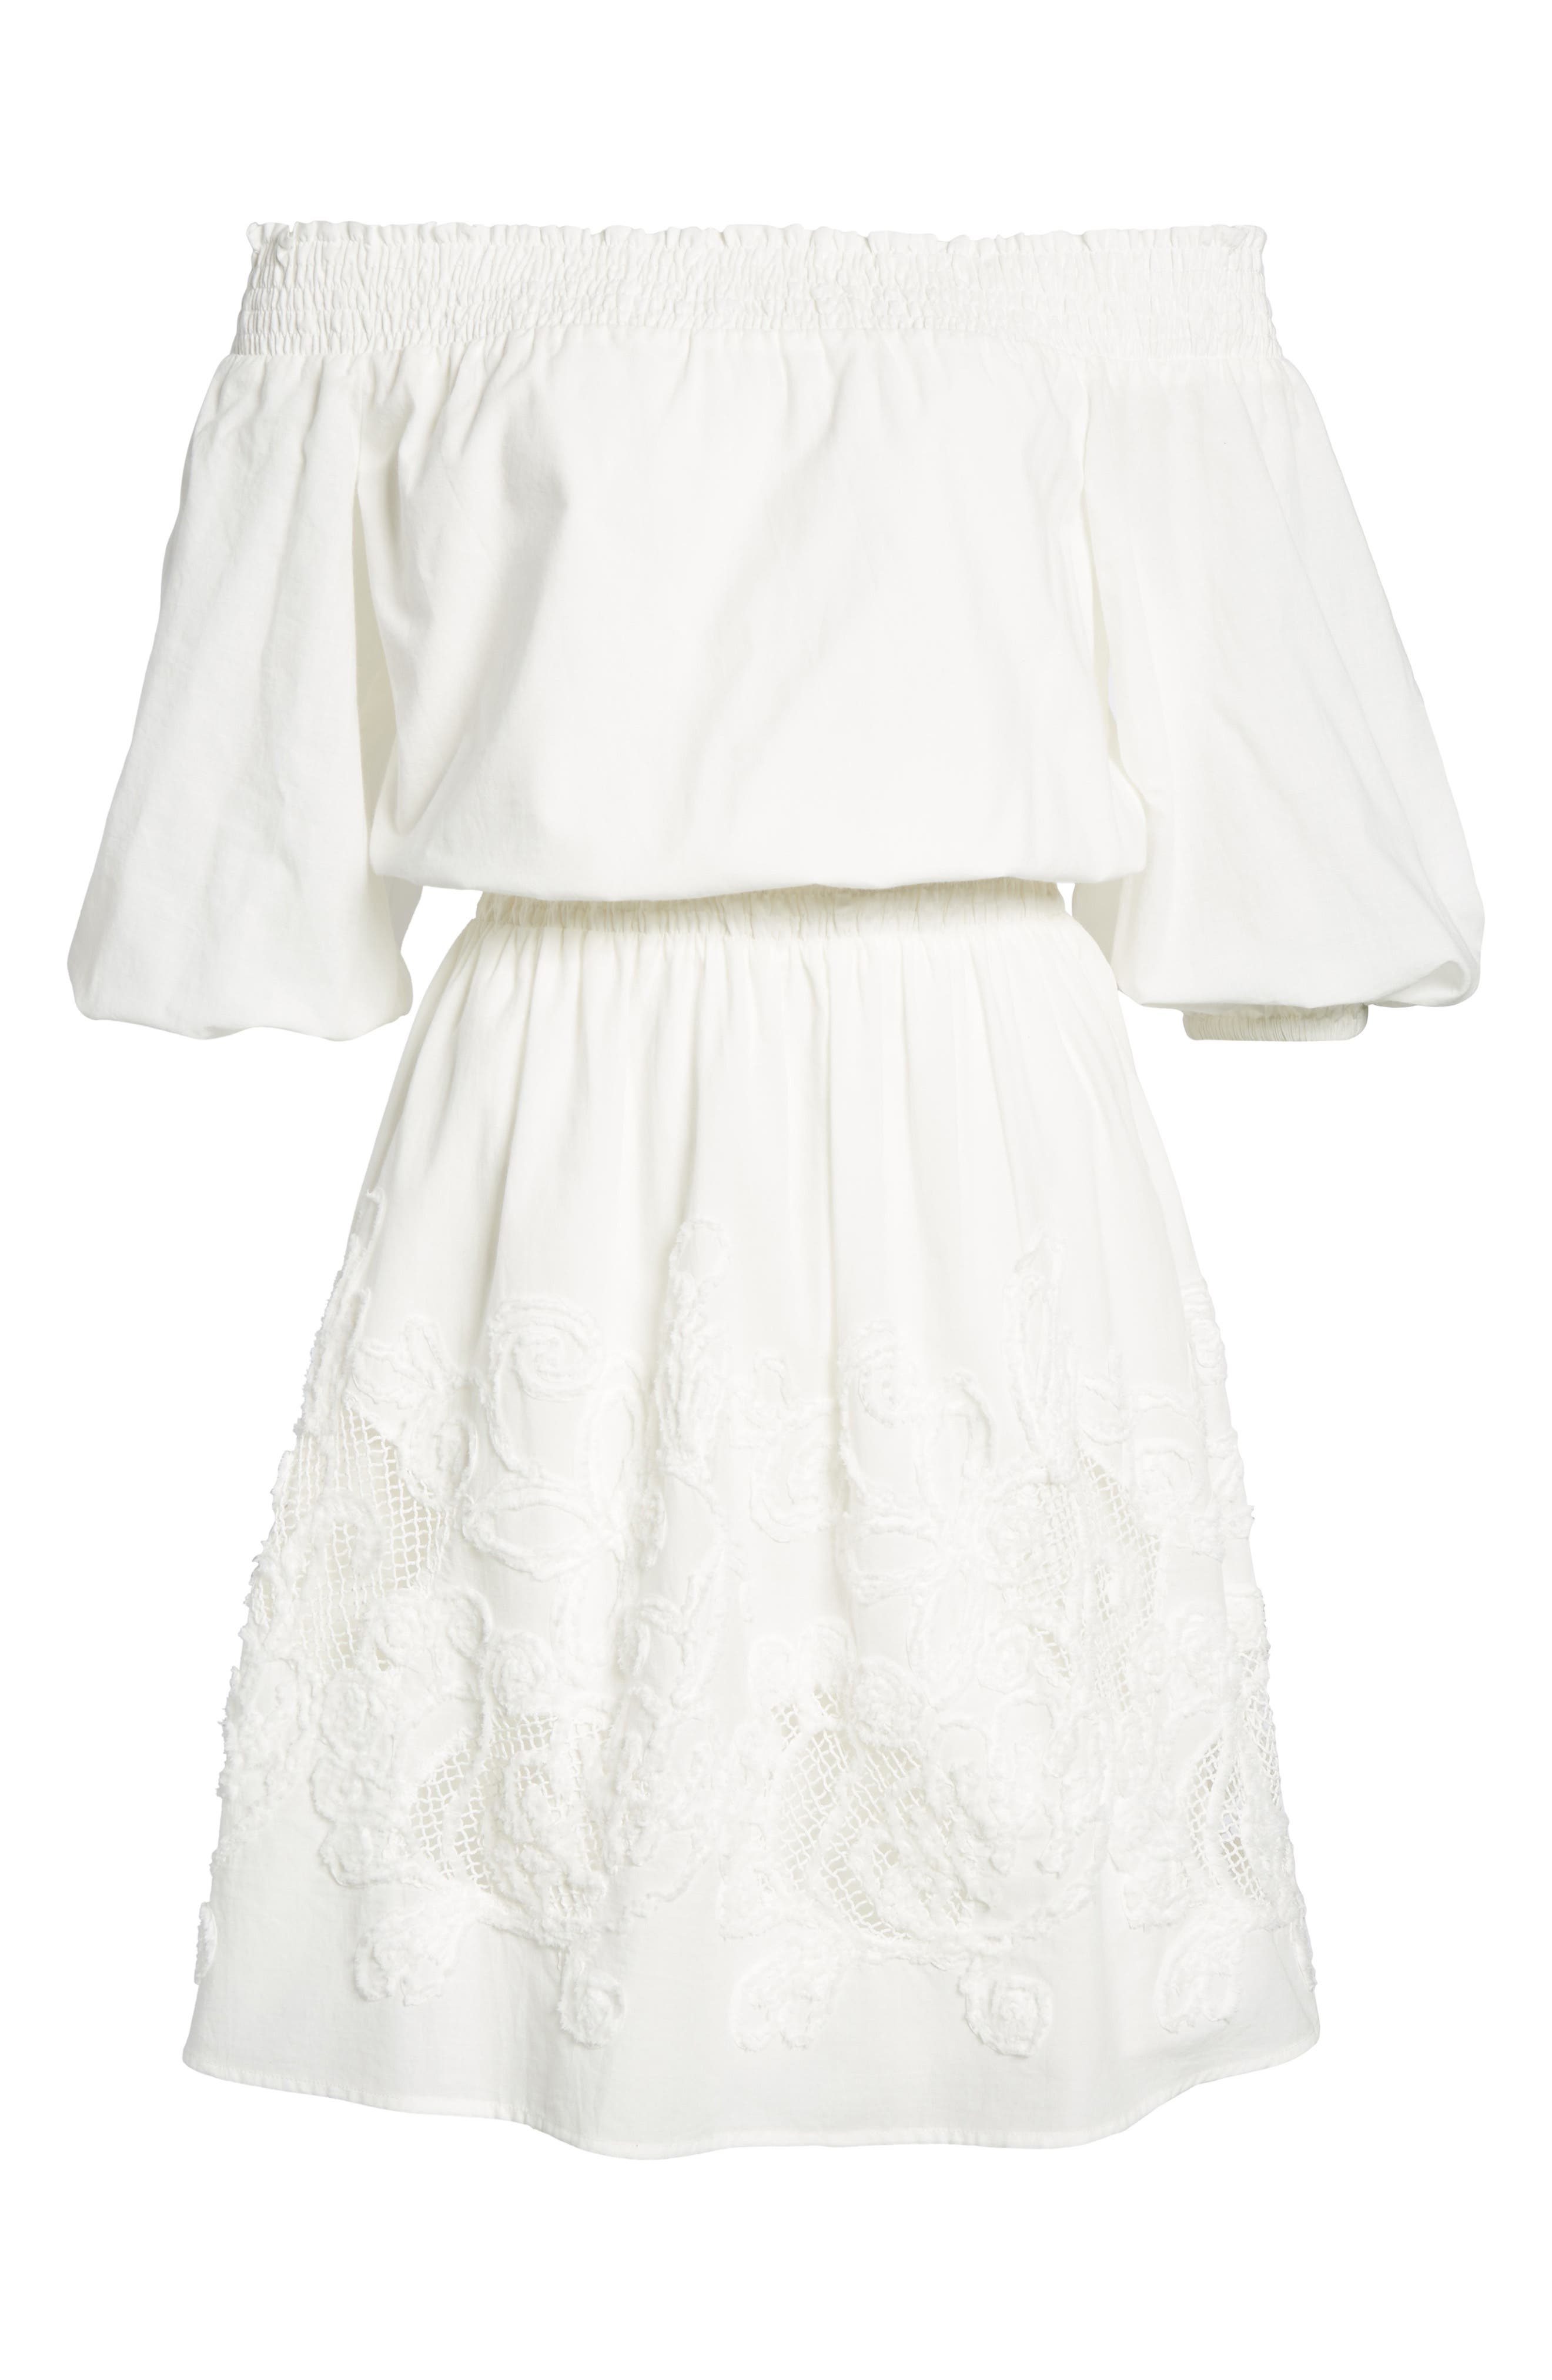 Embroidered Off the Shoulder Blouson Dress,                             Alternate thumbnail 6, color,                             White Snow